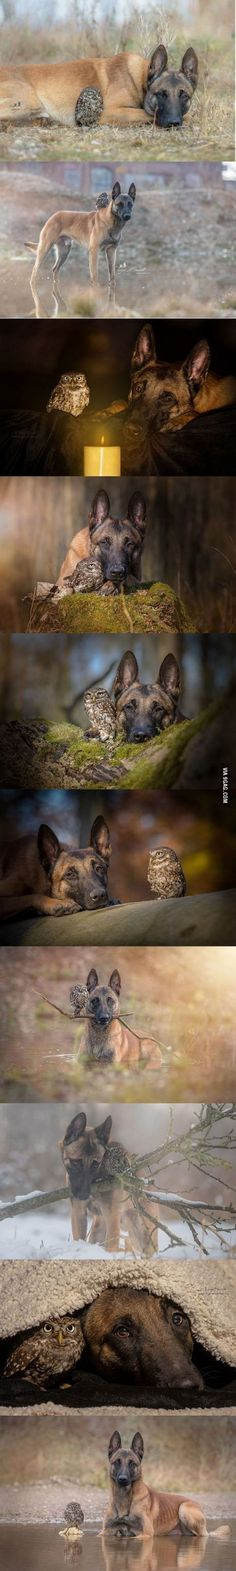 Friendship between a dog and an owl. I really need to create an Animal Odd Couple file...